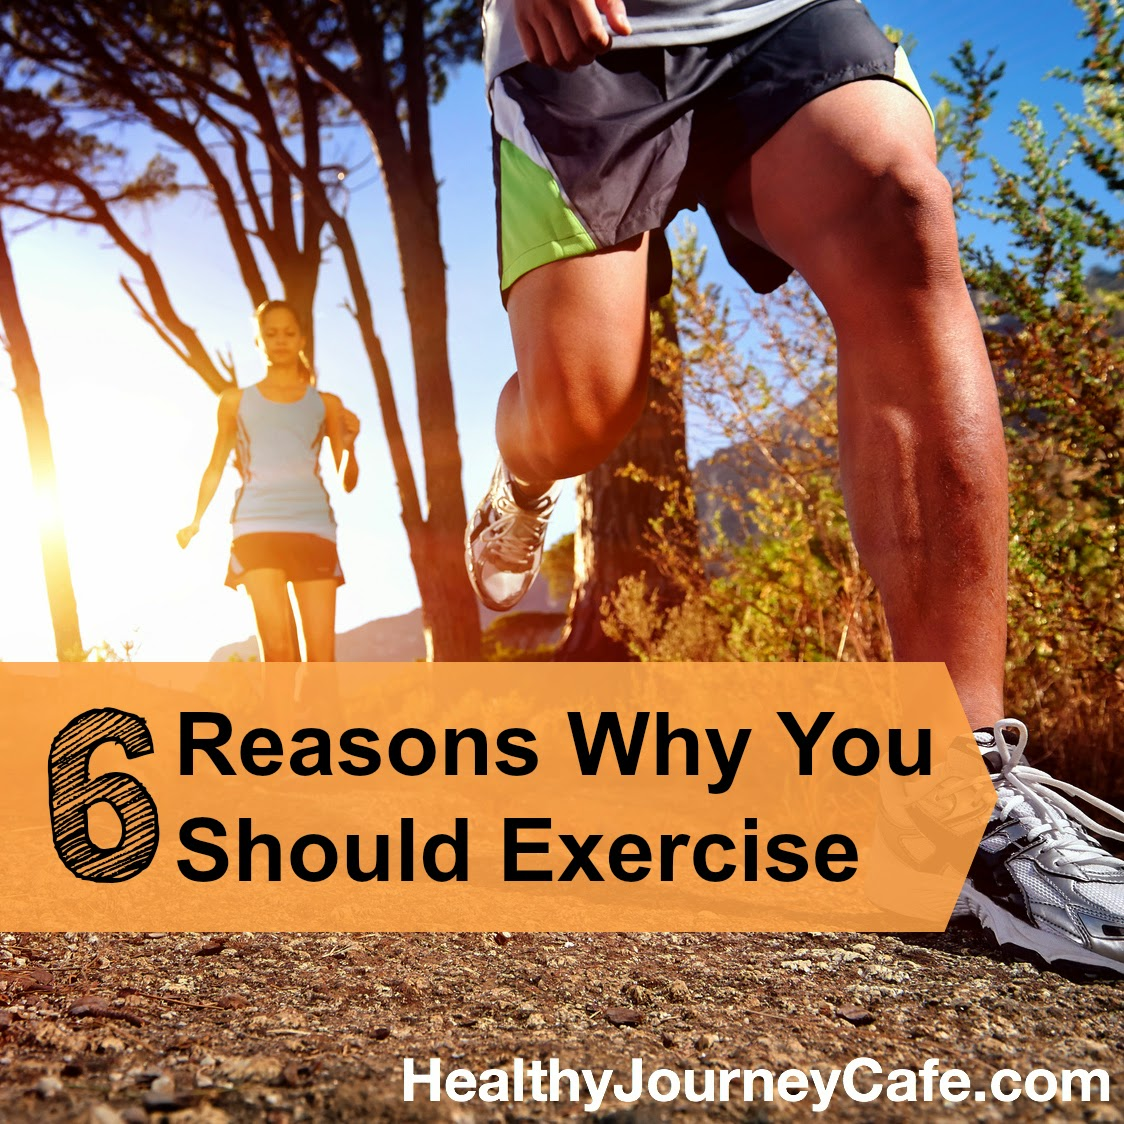 6 Reasons Why You Should Exercise